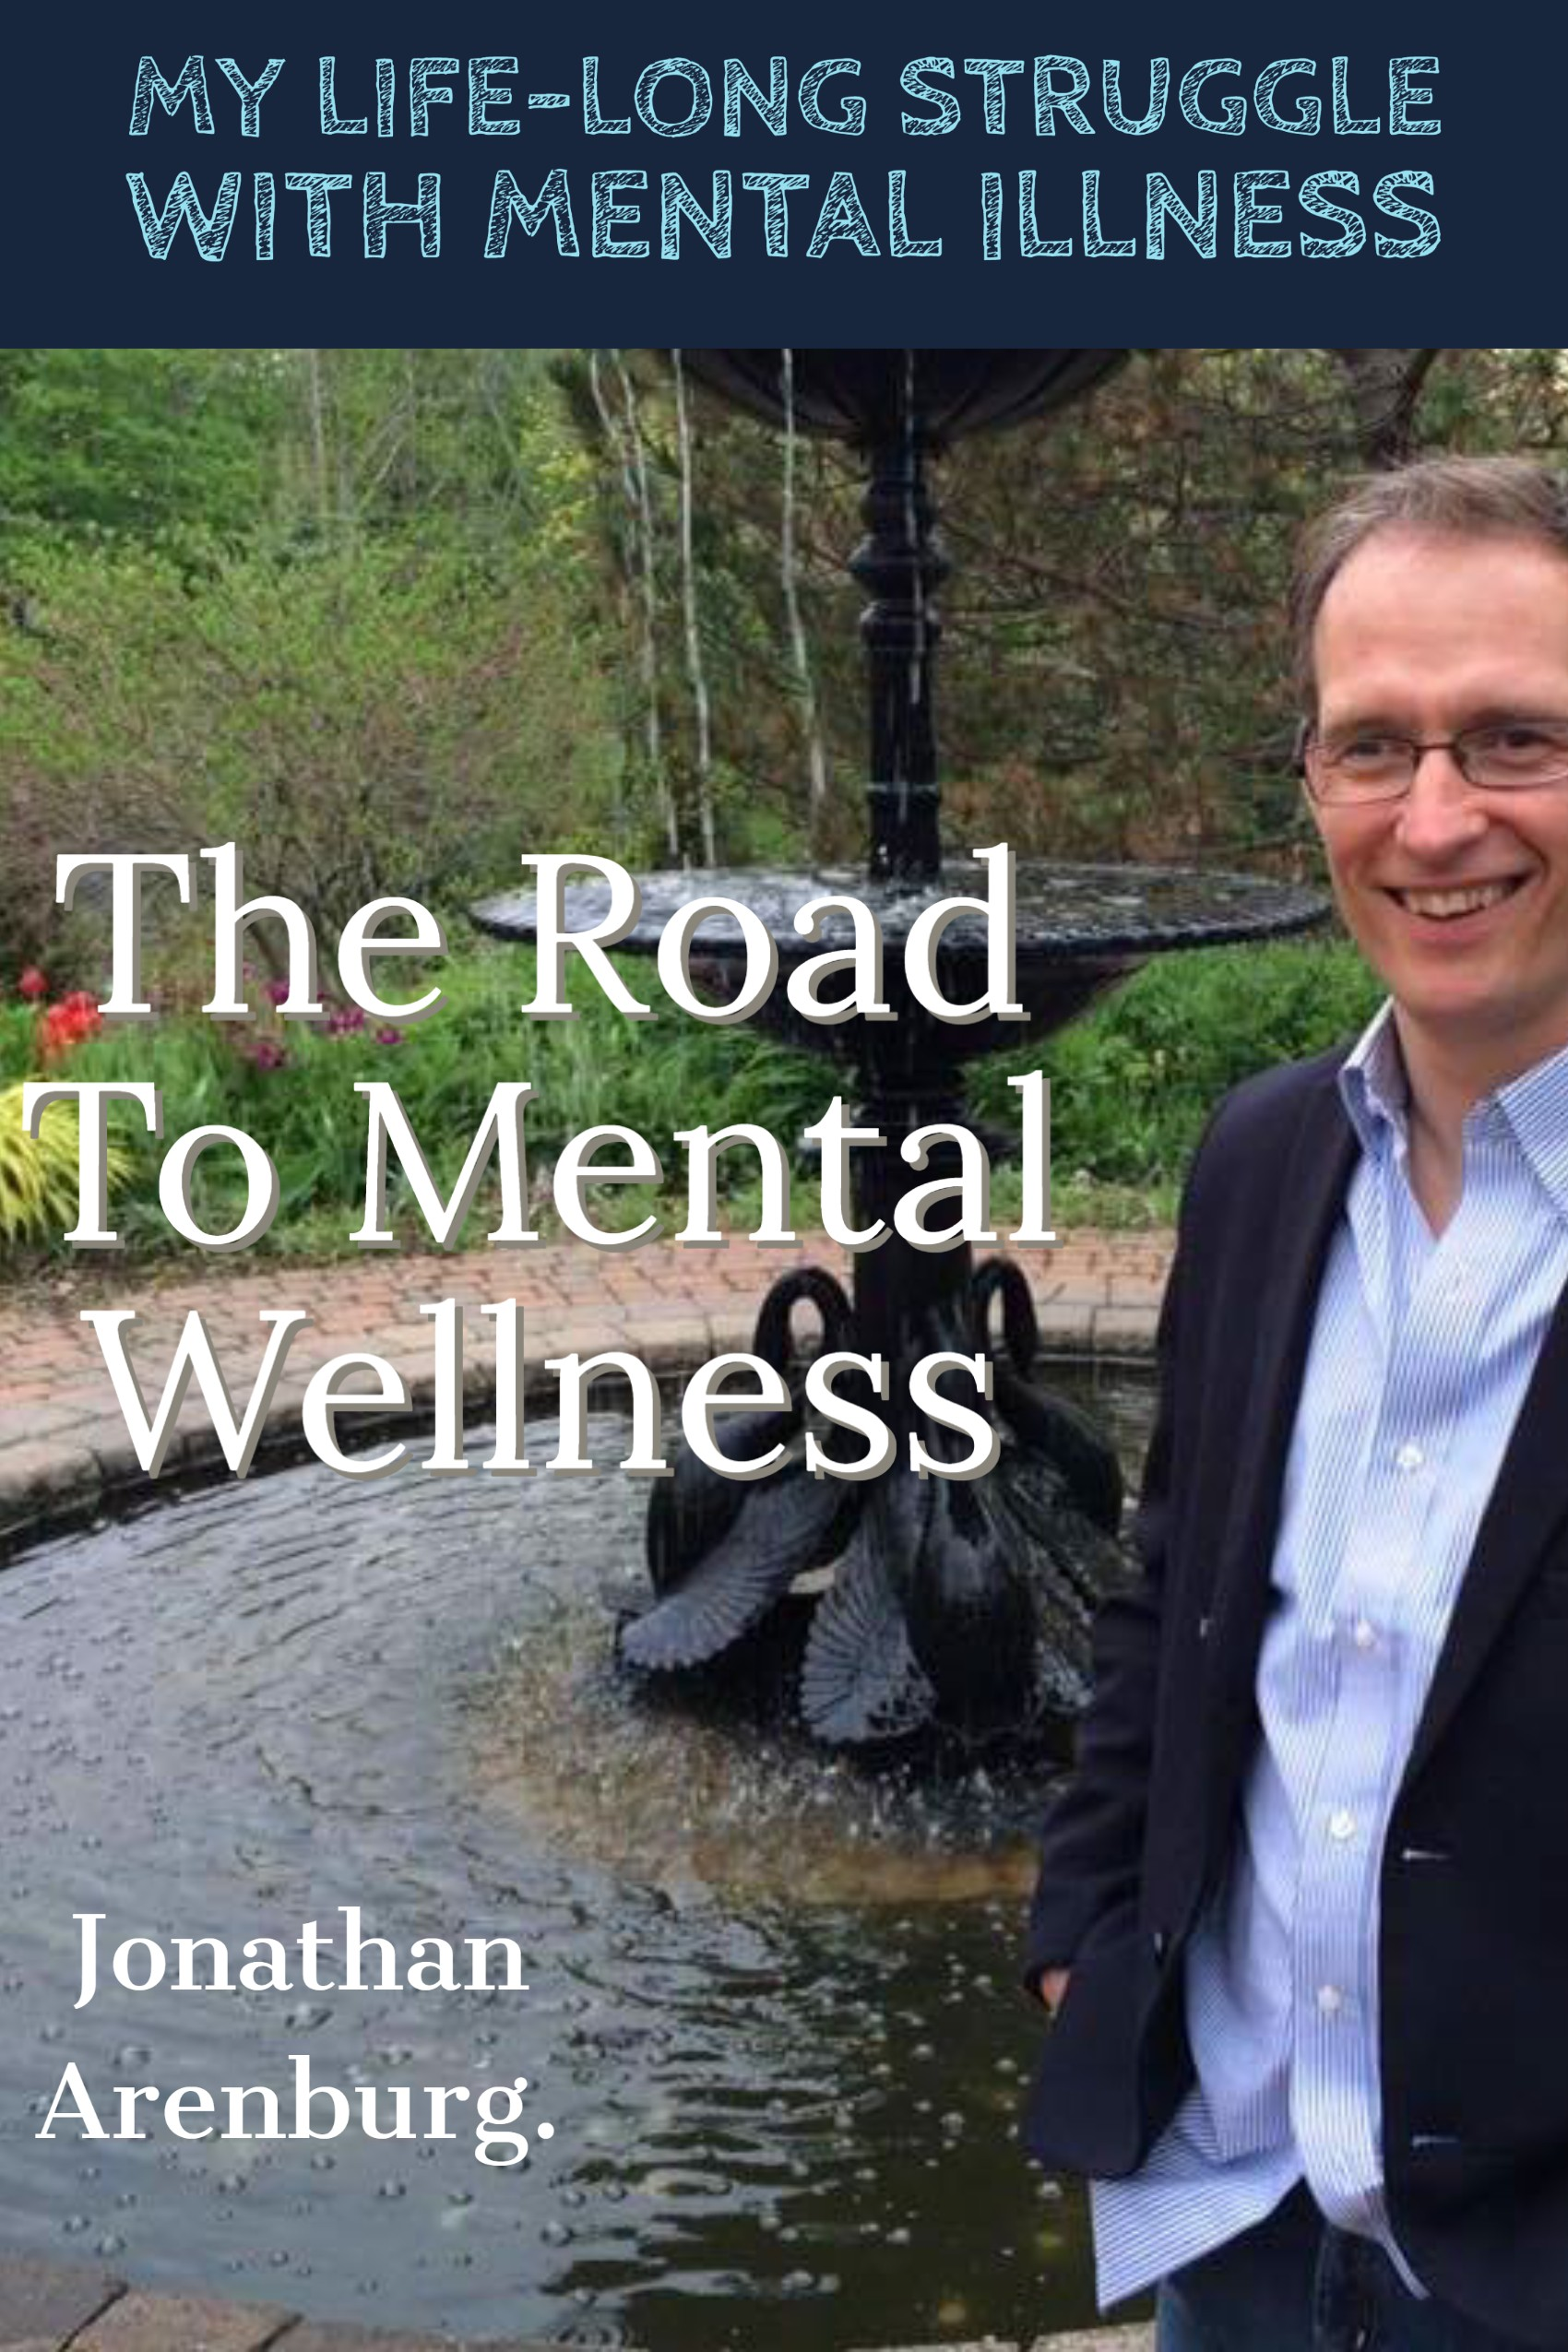 The Road To Mental Wellness- The Book